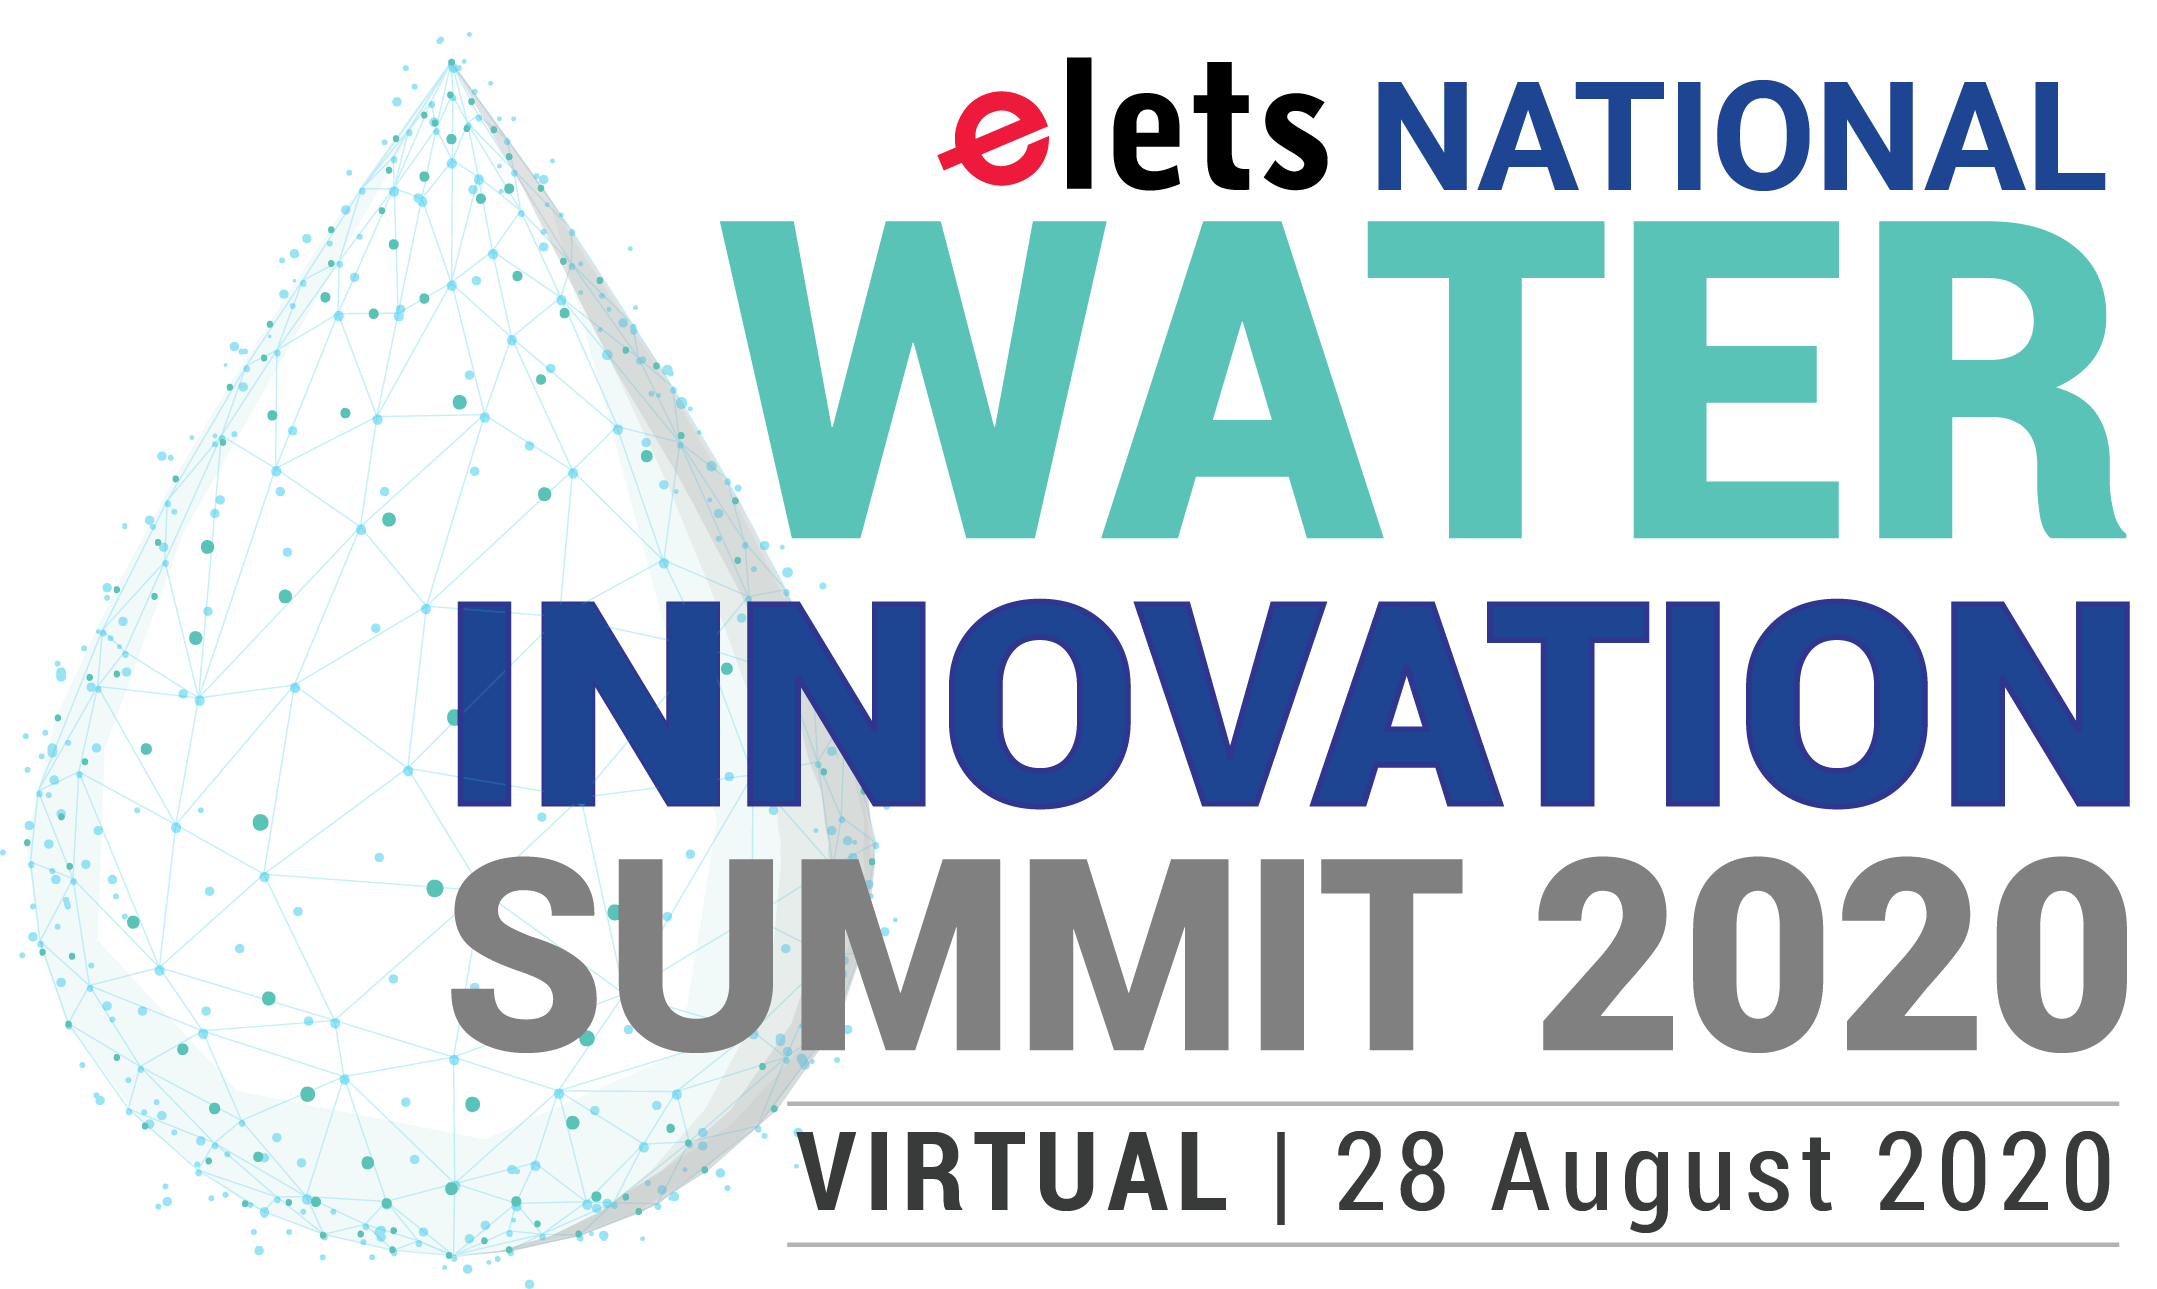 National Water Innovation Summit